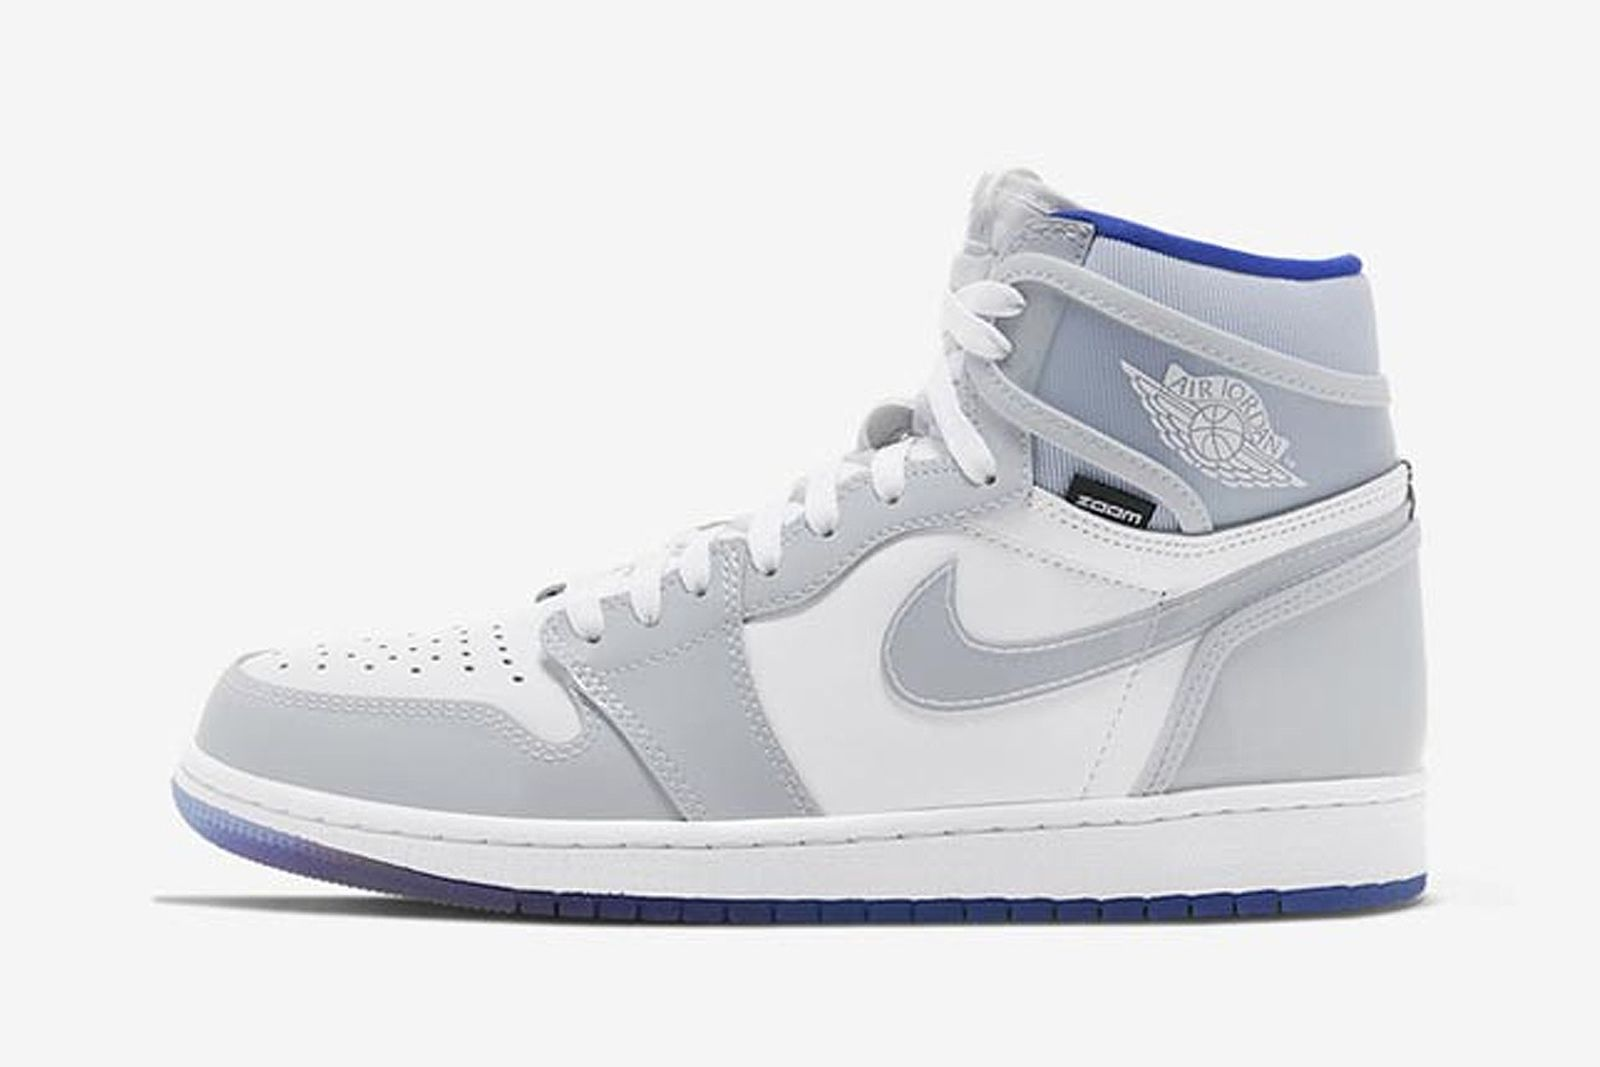 nike-air-jordan-1-high-zoom-racer-blue-release-date-price-03